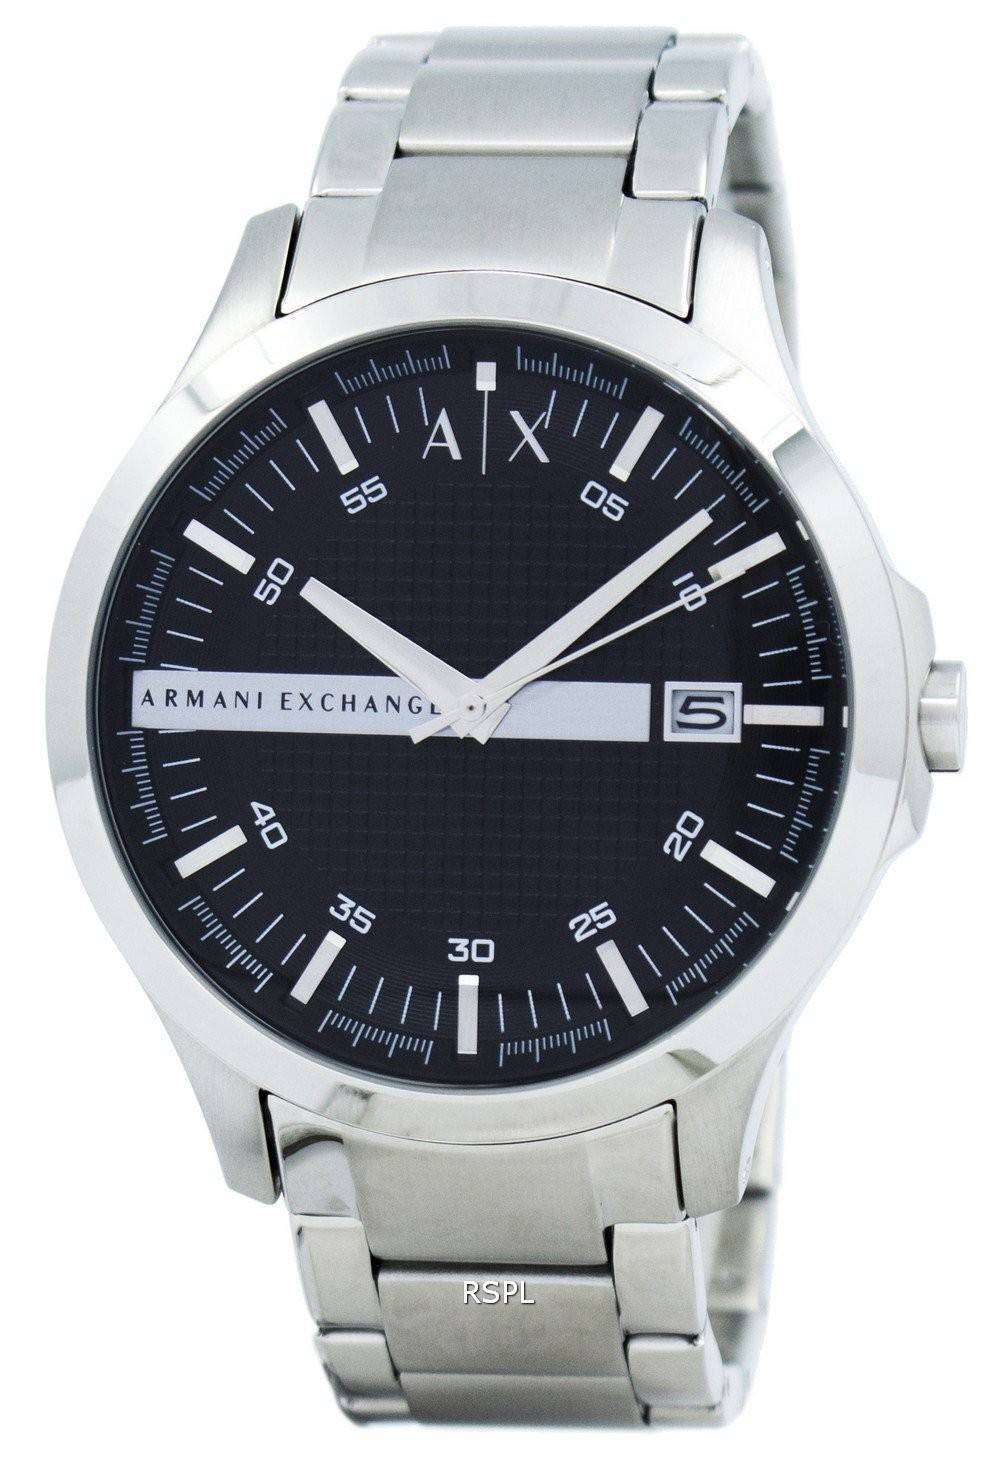 56e79d2302f1 Armani Exchange Black Dial Stainless Steel AX2103 Mens Watch ...